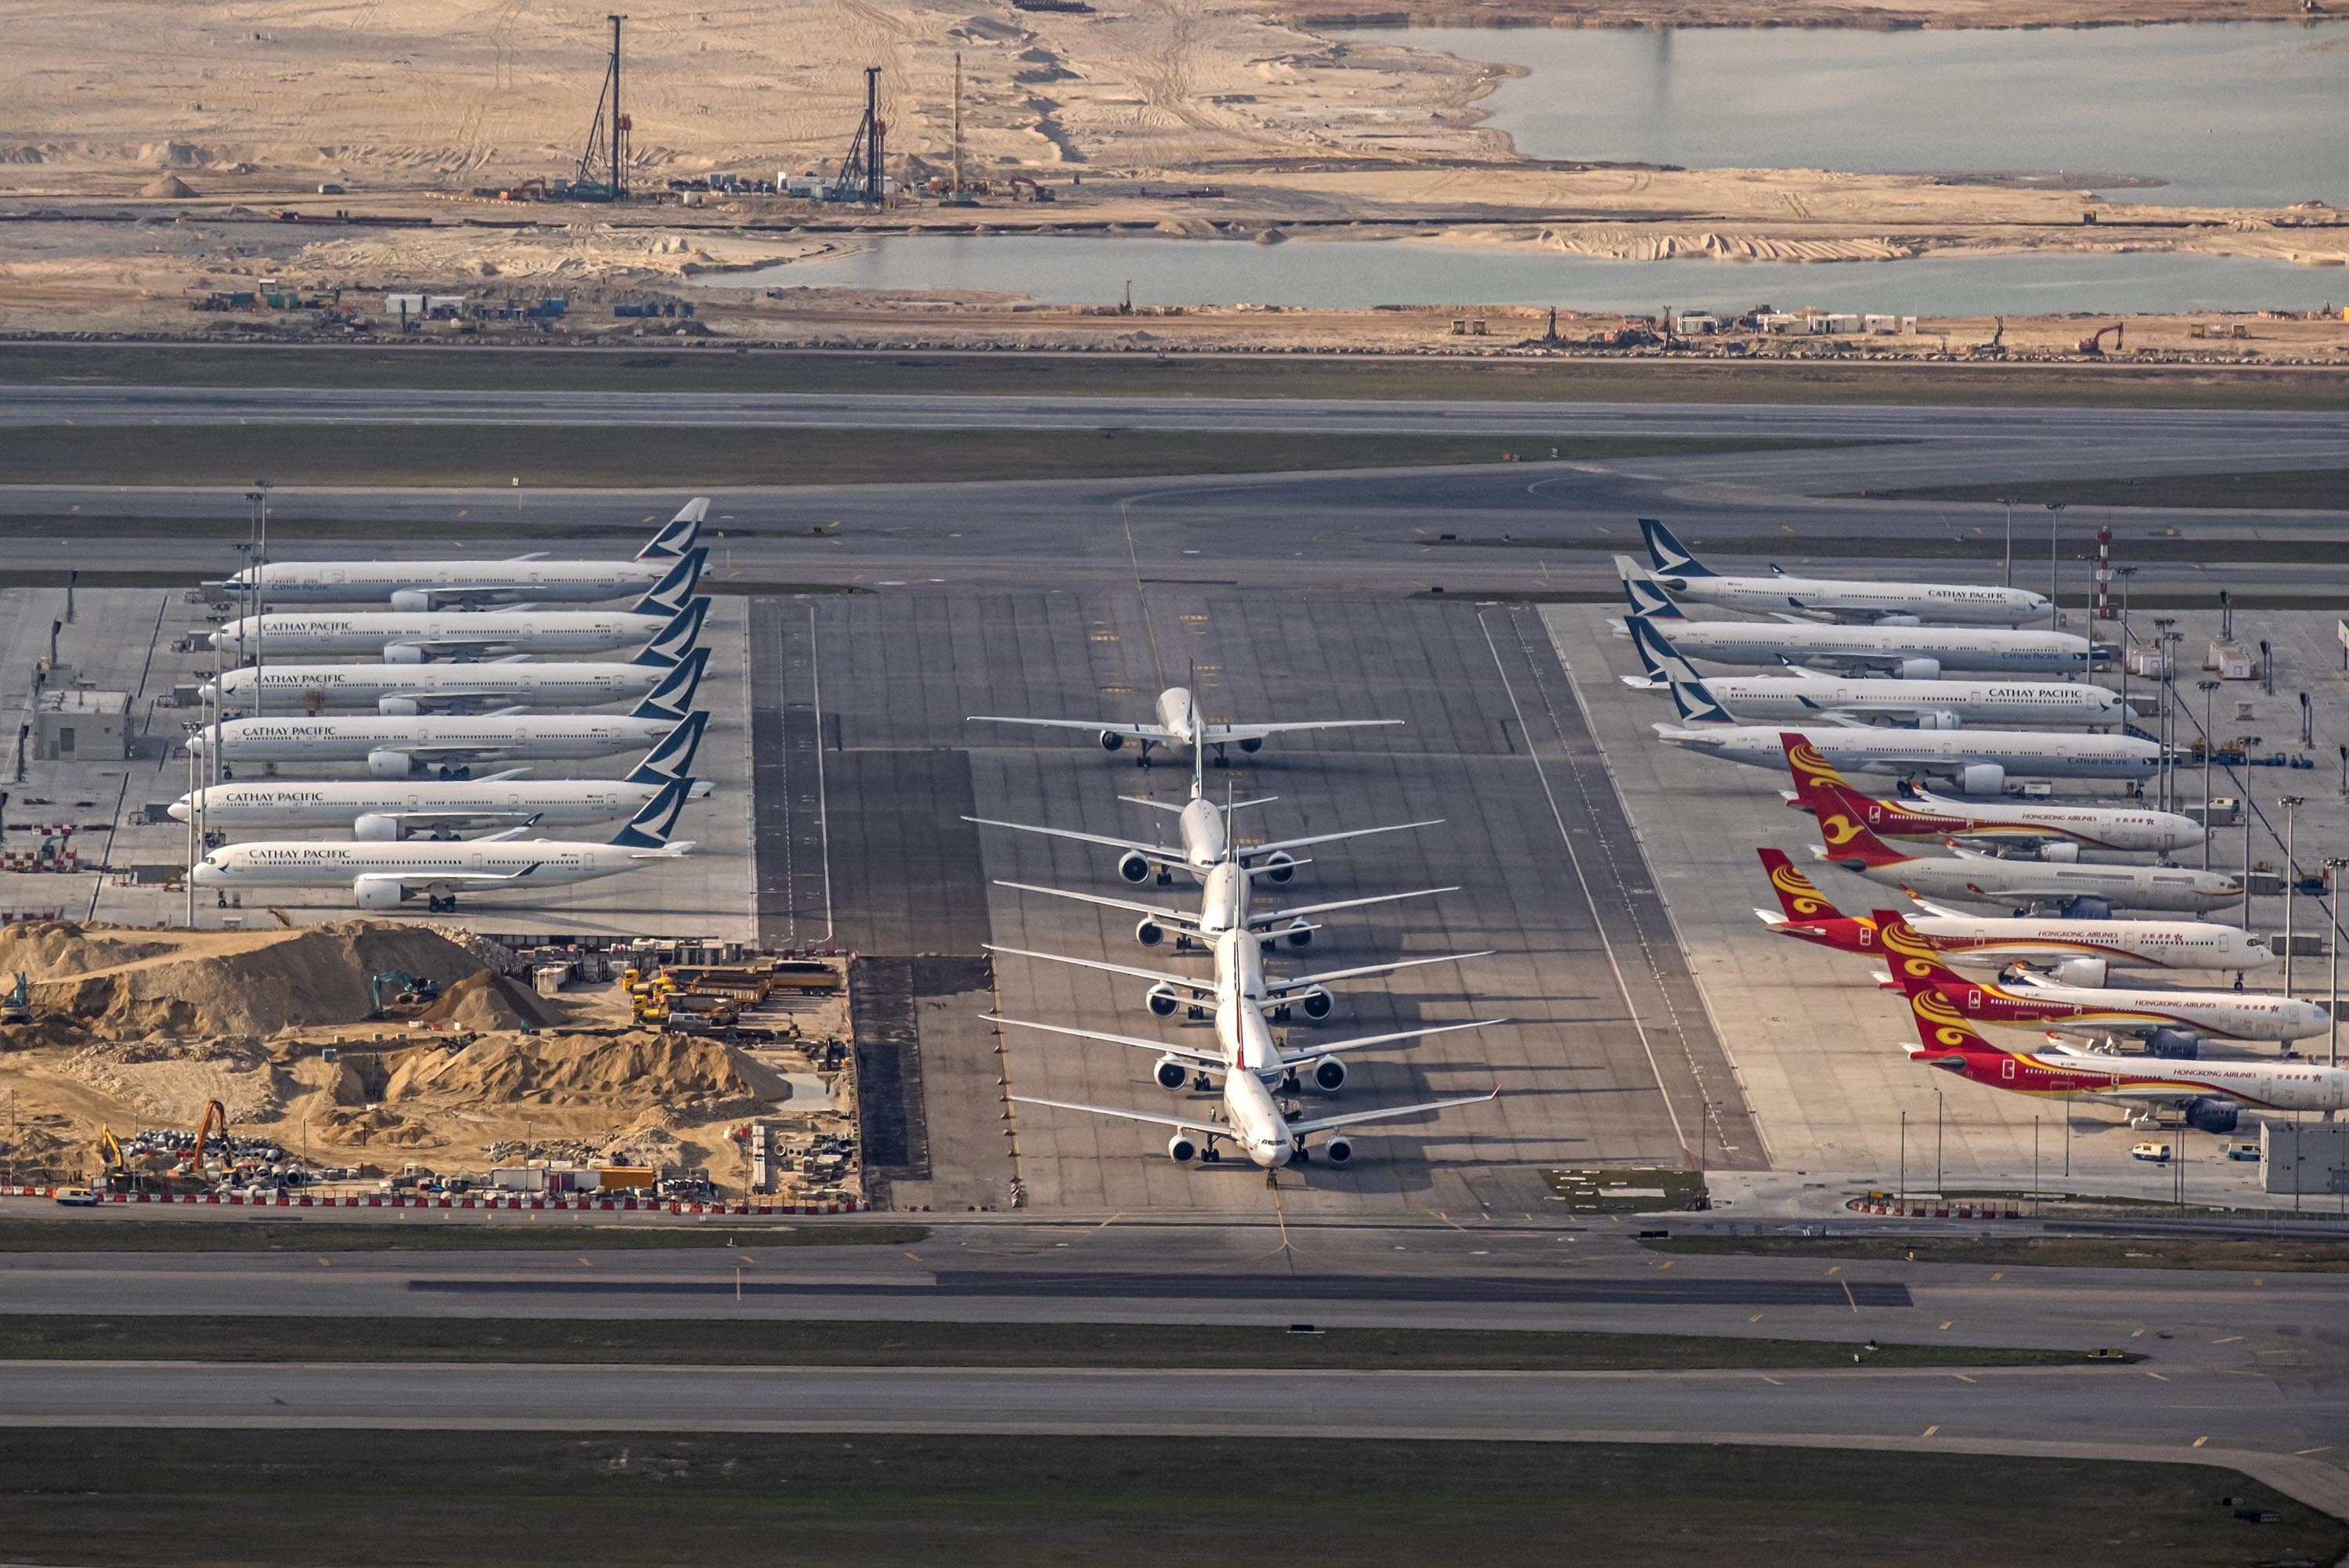 Aircraft operated by Cathay Pacific and Hong Kong Airlines sit parked on the tarmac at Hong Kong International Airport on March 5.